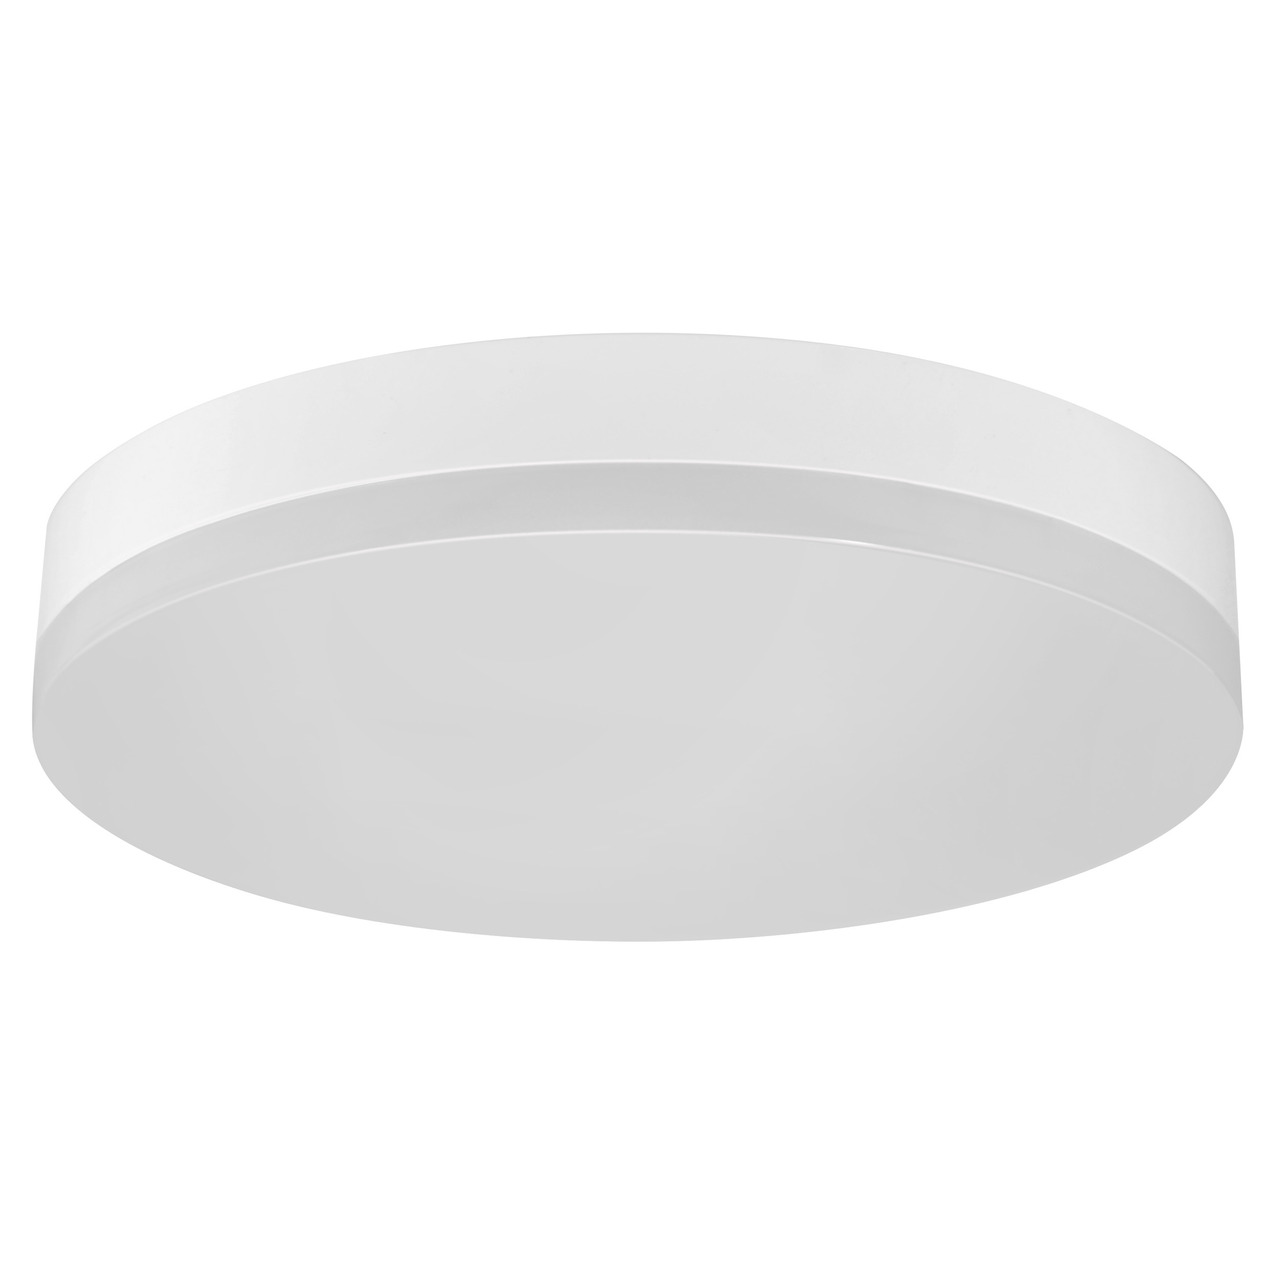 24-W-LED-Deckenleuchte Office Round- warmweiss- IP44